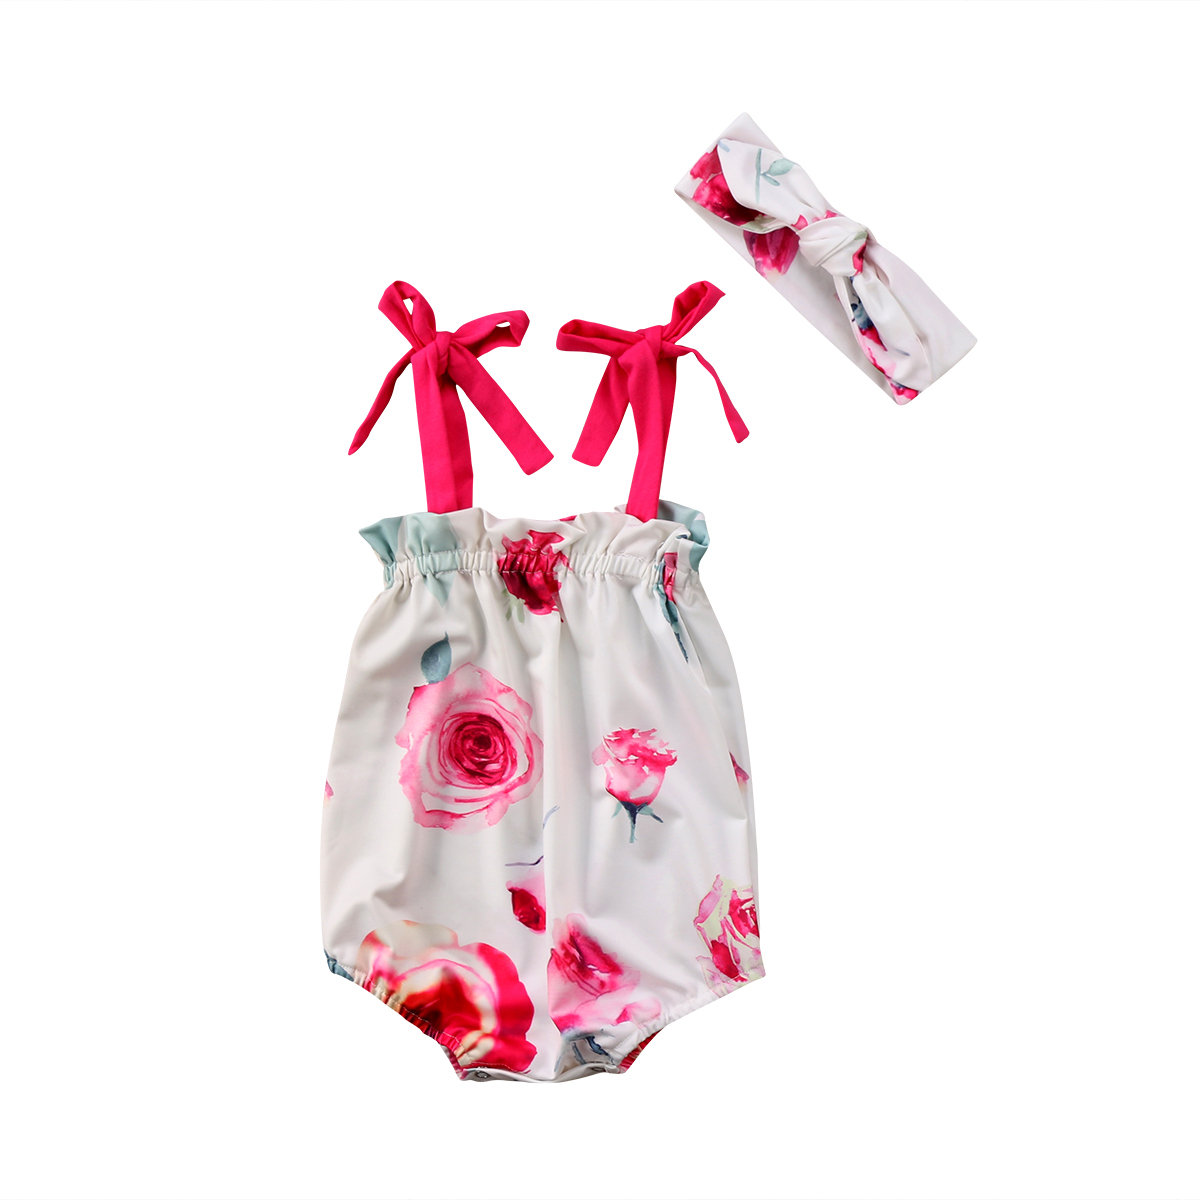 2PCS Cute Toddler Newborn Baby Girl Kid Floral Romper Jumpsuit Jumper Headband Outfit 2 PCS Baby Set